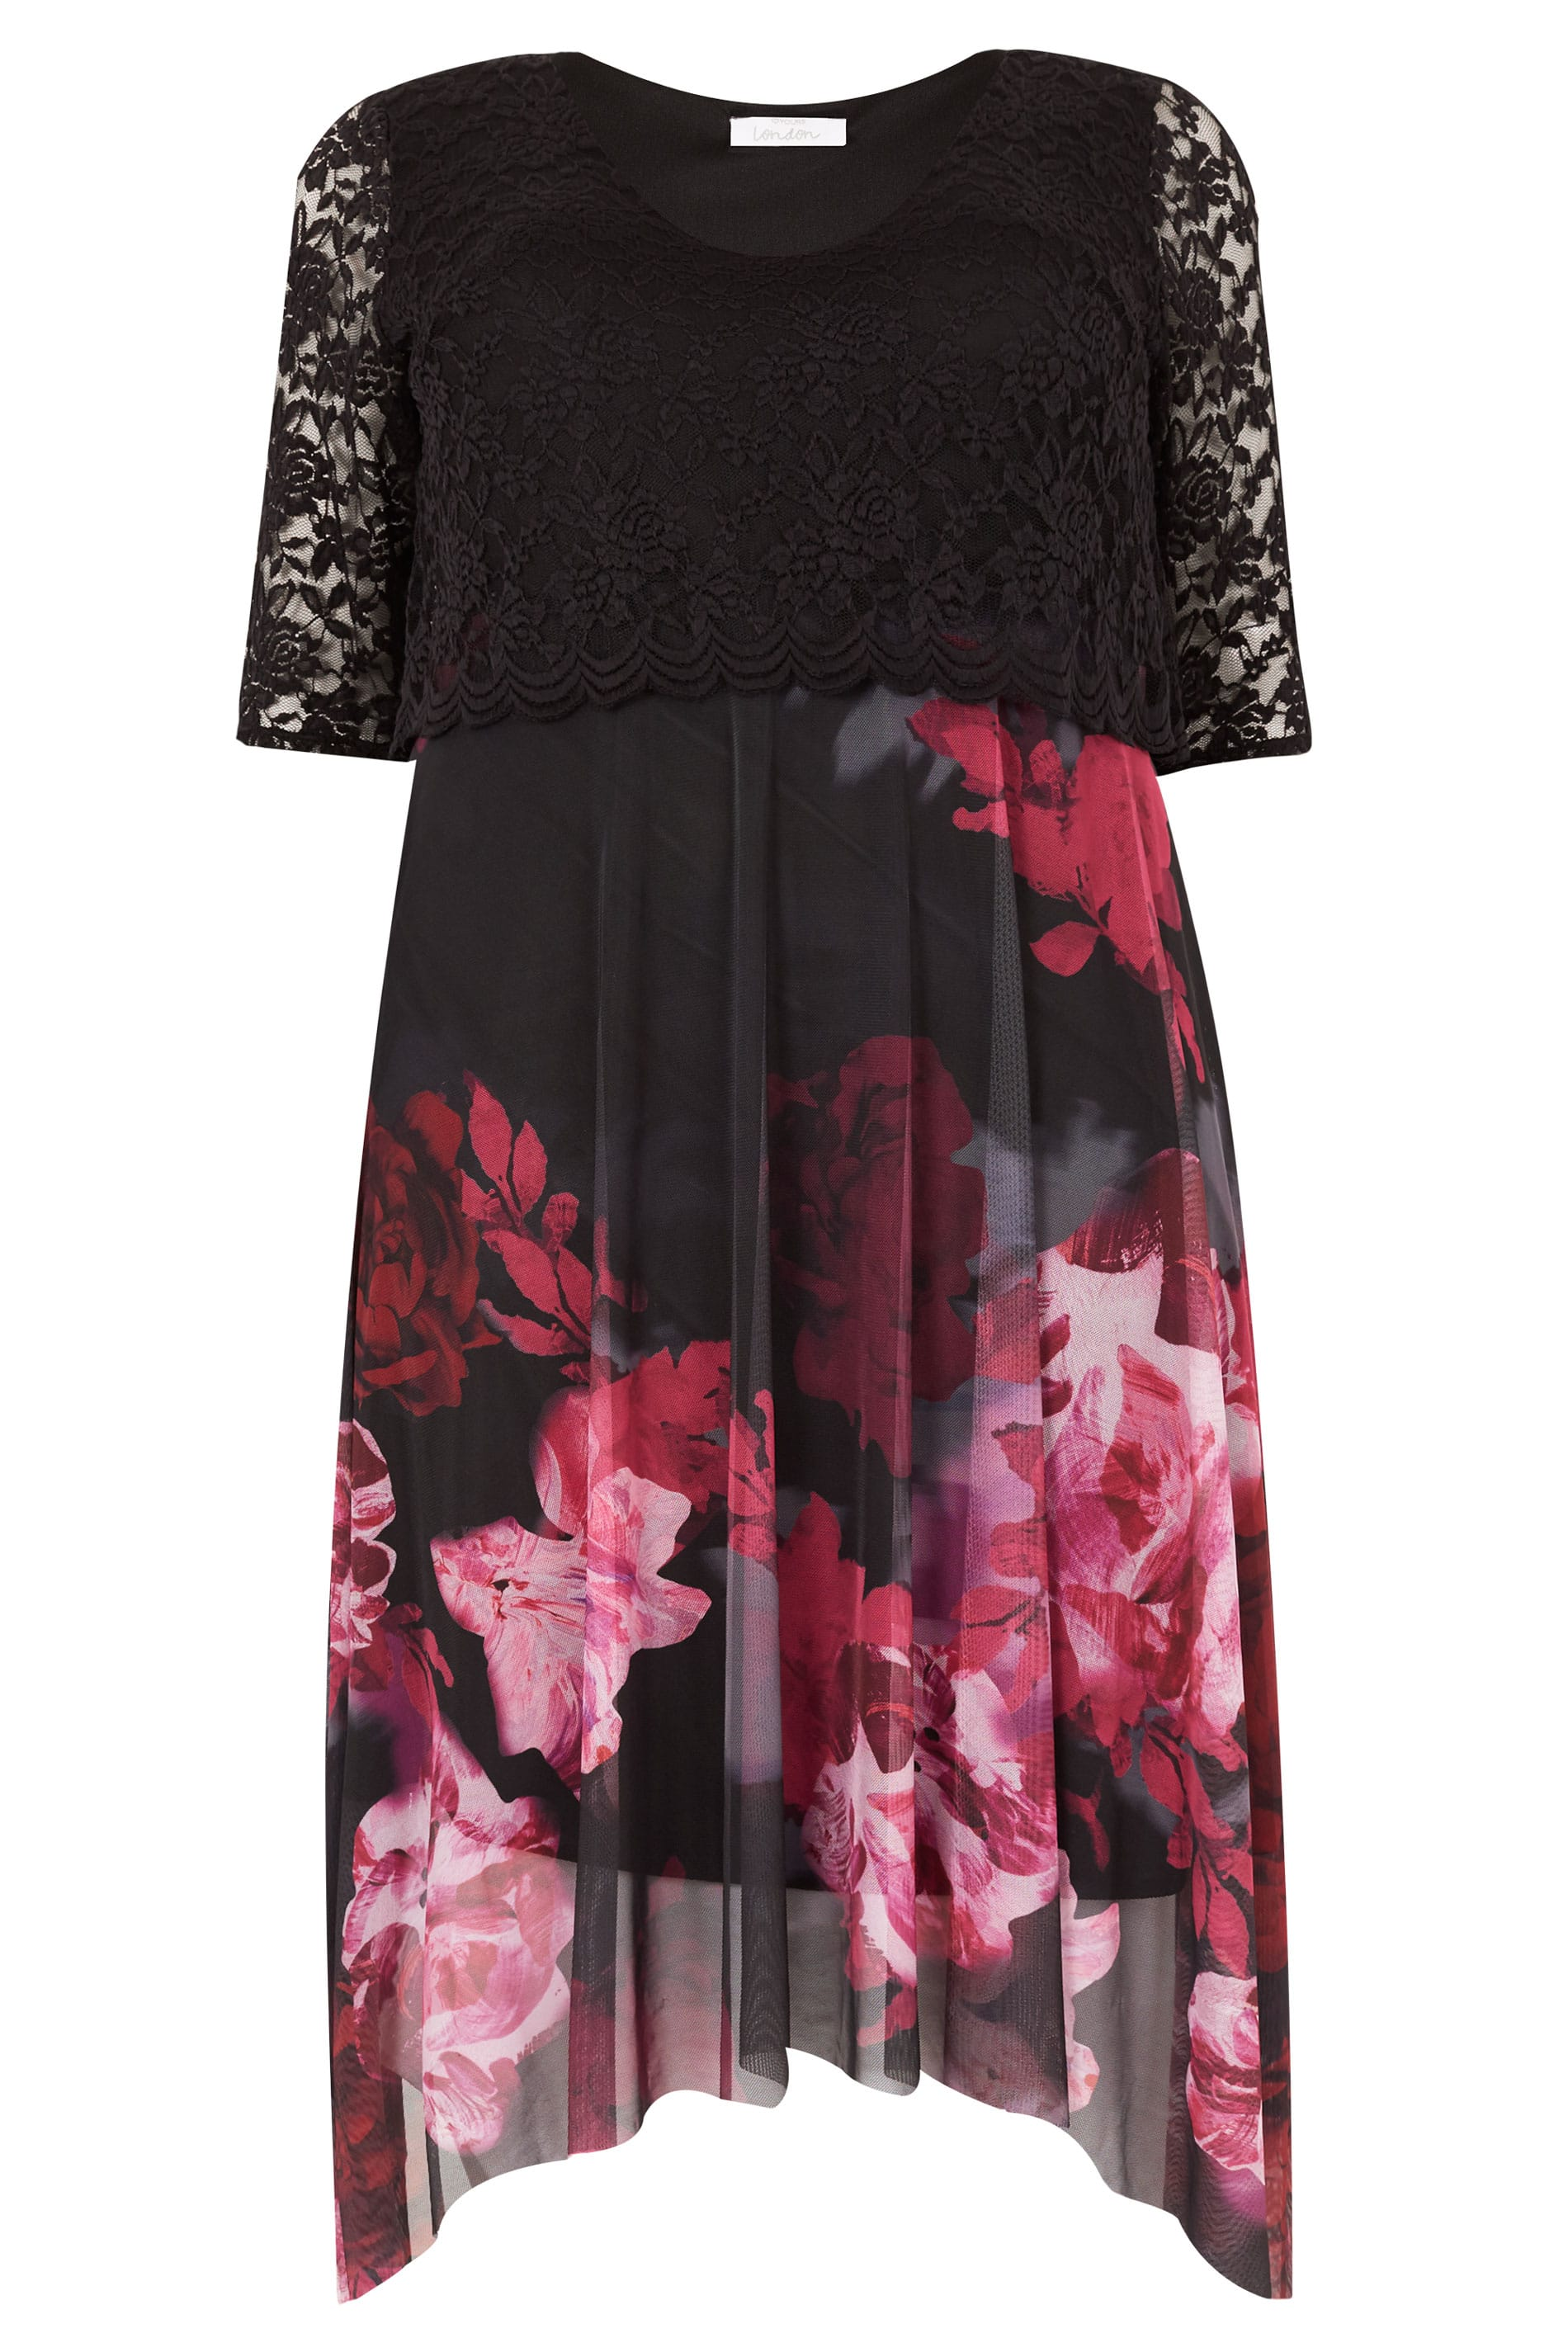 daec2db5eda YOURS LONDON Black   Berry Floral Dress With Lace Overlay